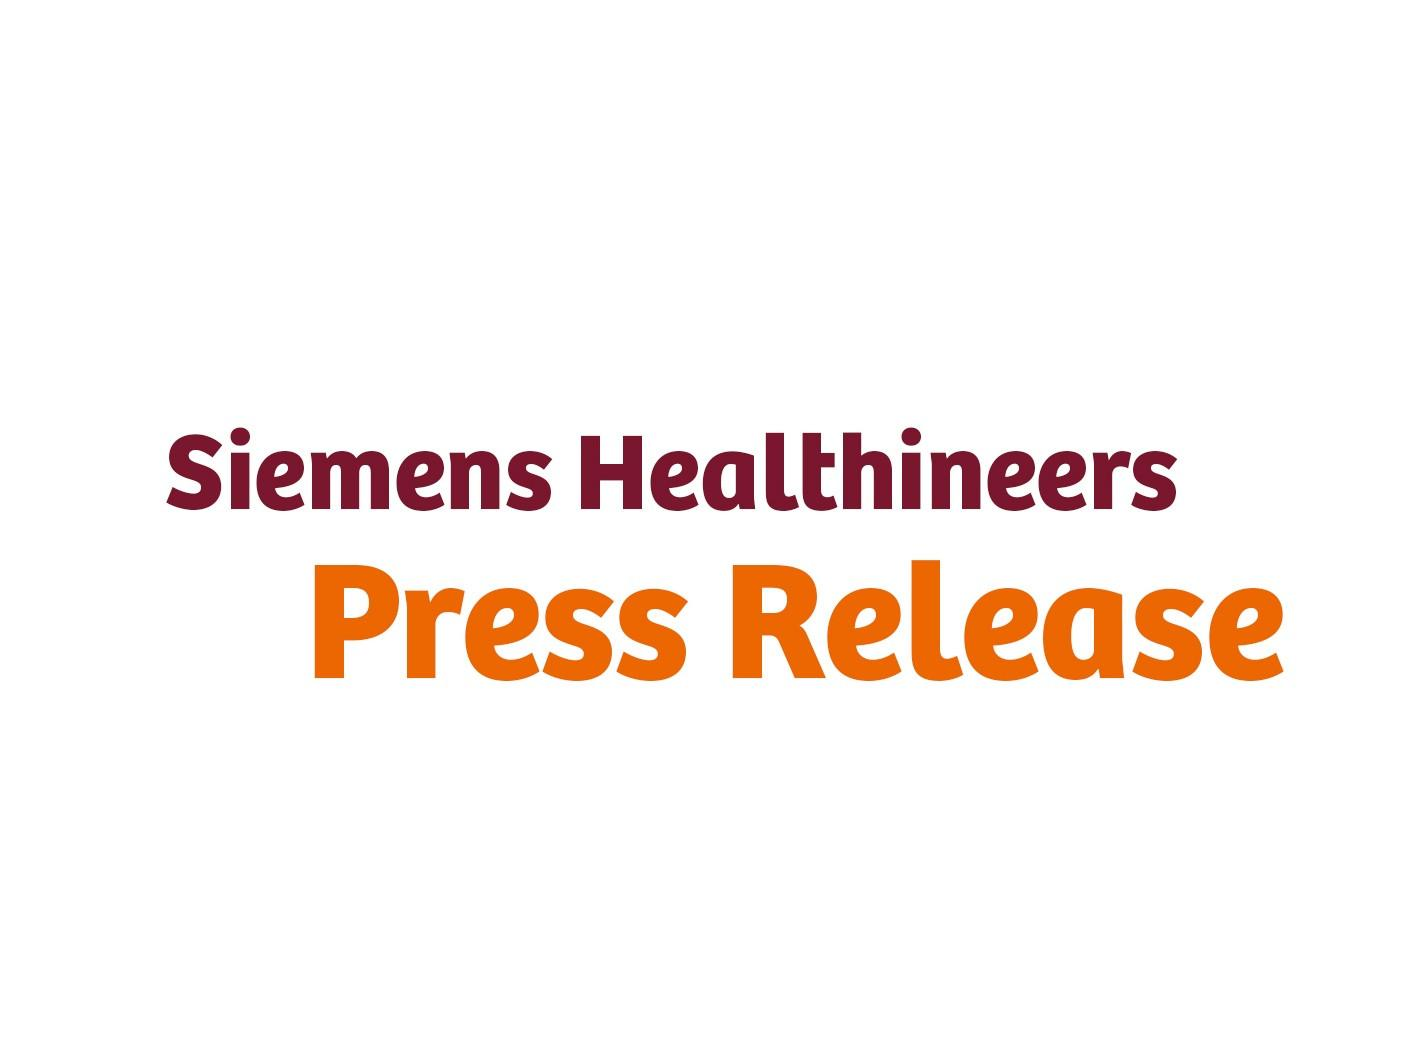 RENOWN INSTITUTE FOR HEALTH INNOVATION EXPANDS PARTNERSHIP WITH GILEAD SCIENCES AND SIEMENS HEALTHINEERS TO OFFER ELF- ENHANCED LIVER FIBROSIS TESTING FOR NEVADA NASH STUDY PARTICIPANTS